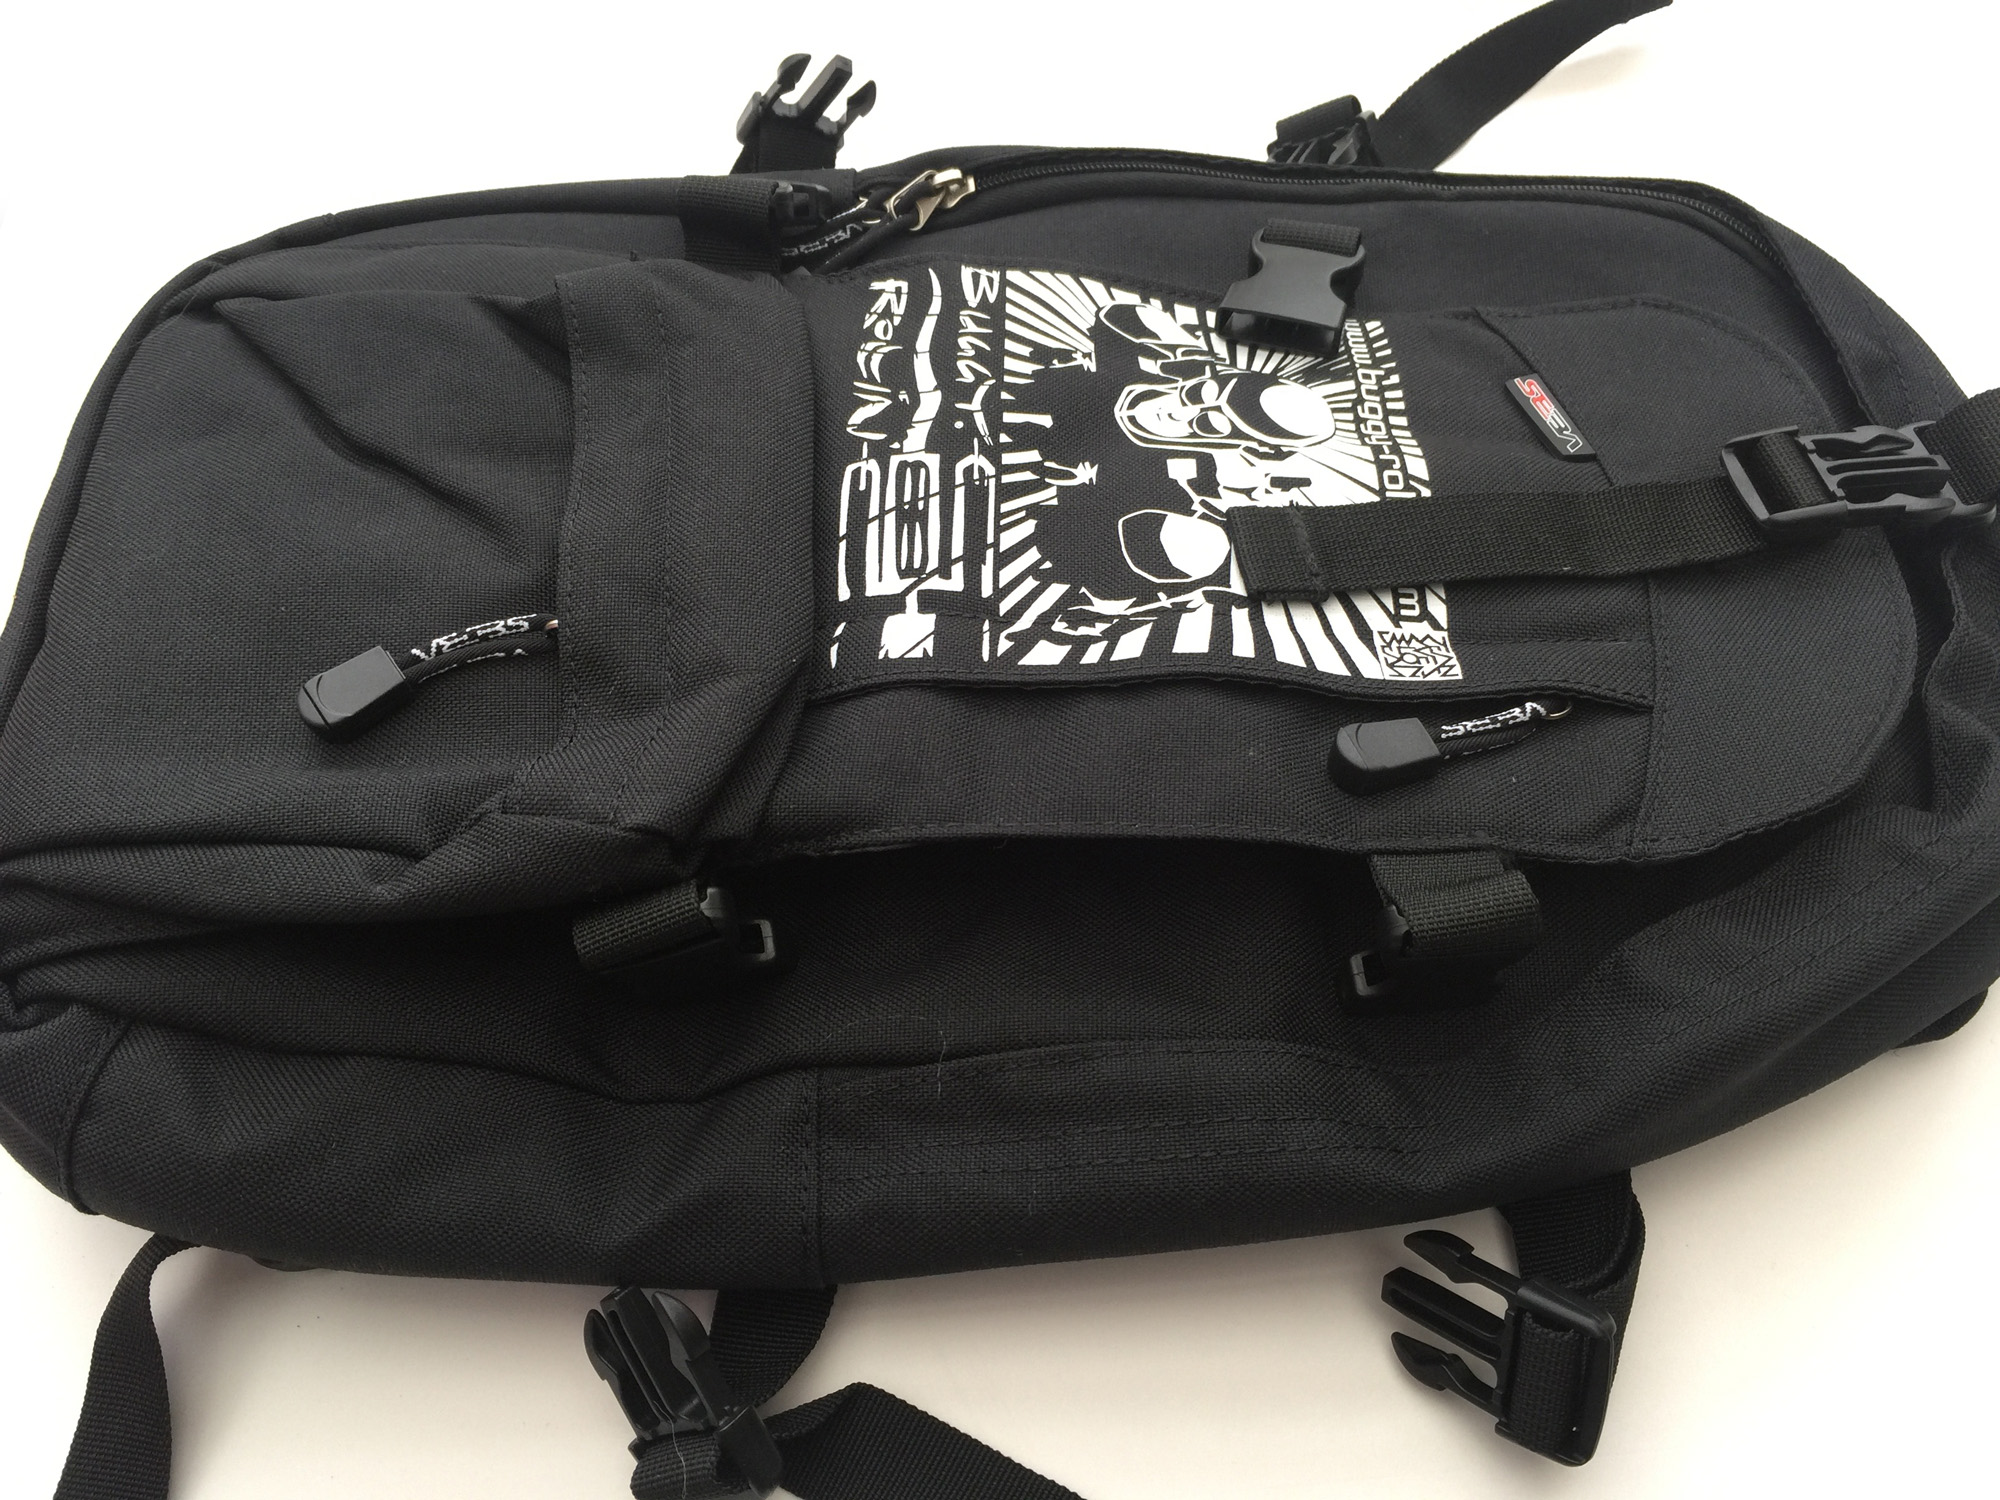 big seba skate bag from side